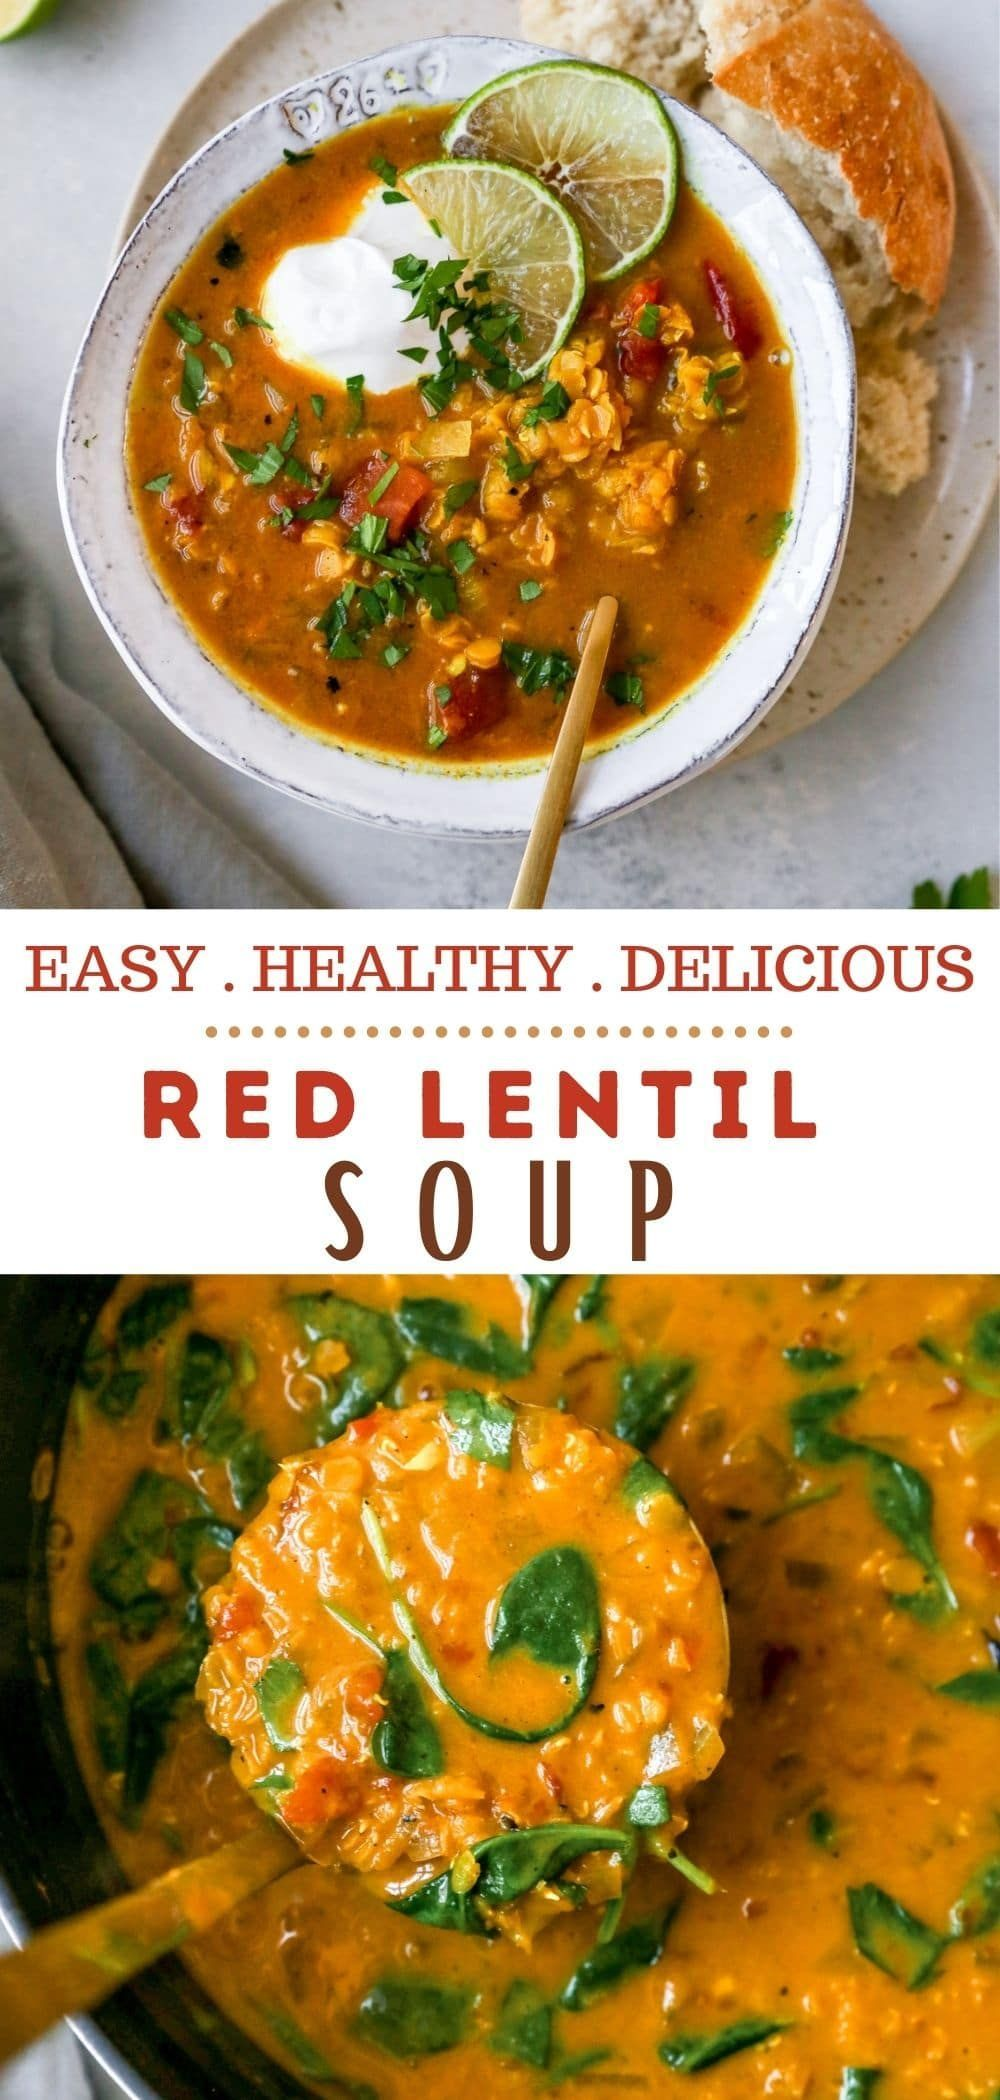 Major Warm Cozy And Comforting Vibes With A Tasty Red Lentil Soup Recipe In 2020 Red Lentil Soup Lentil Soup Recipes Stew Recipes